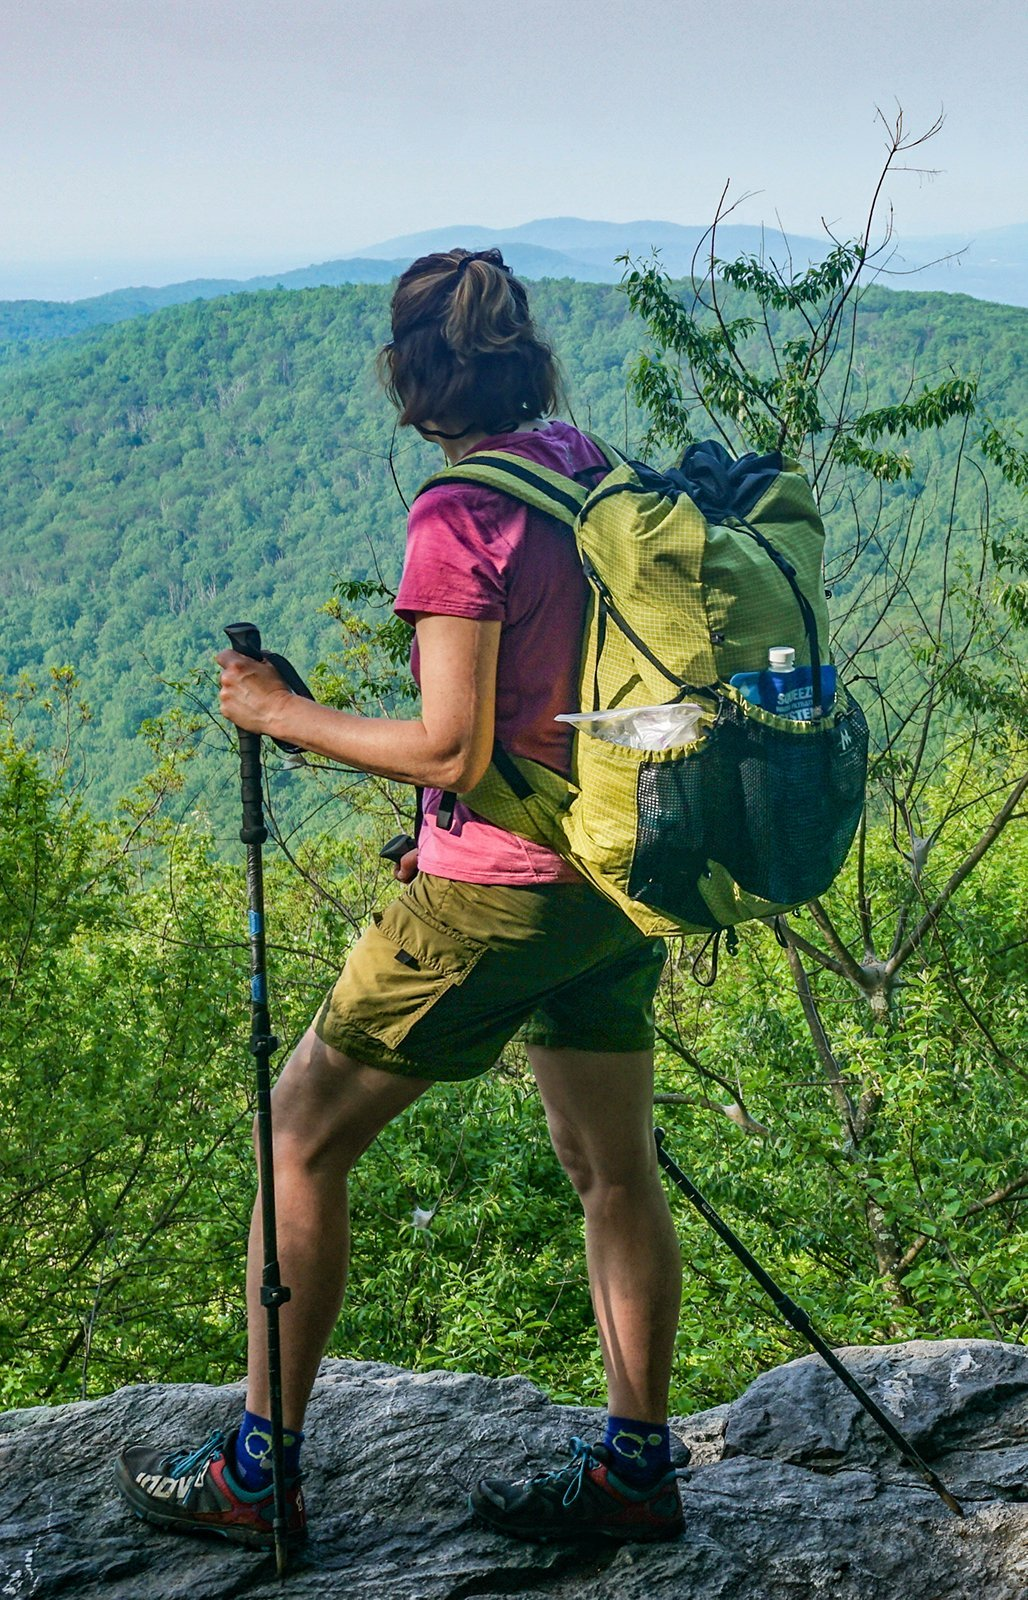 Appalachian Trail scenic overlook